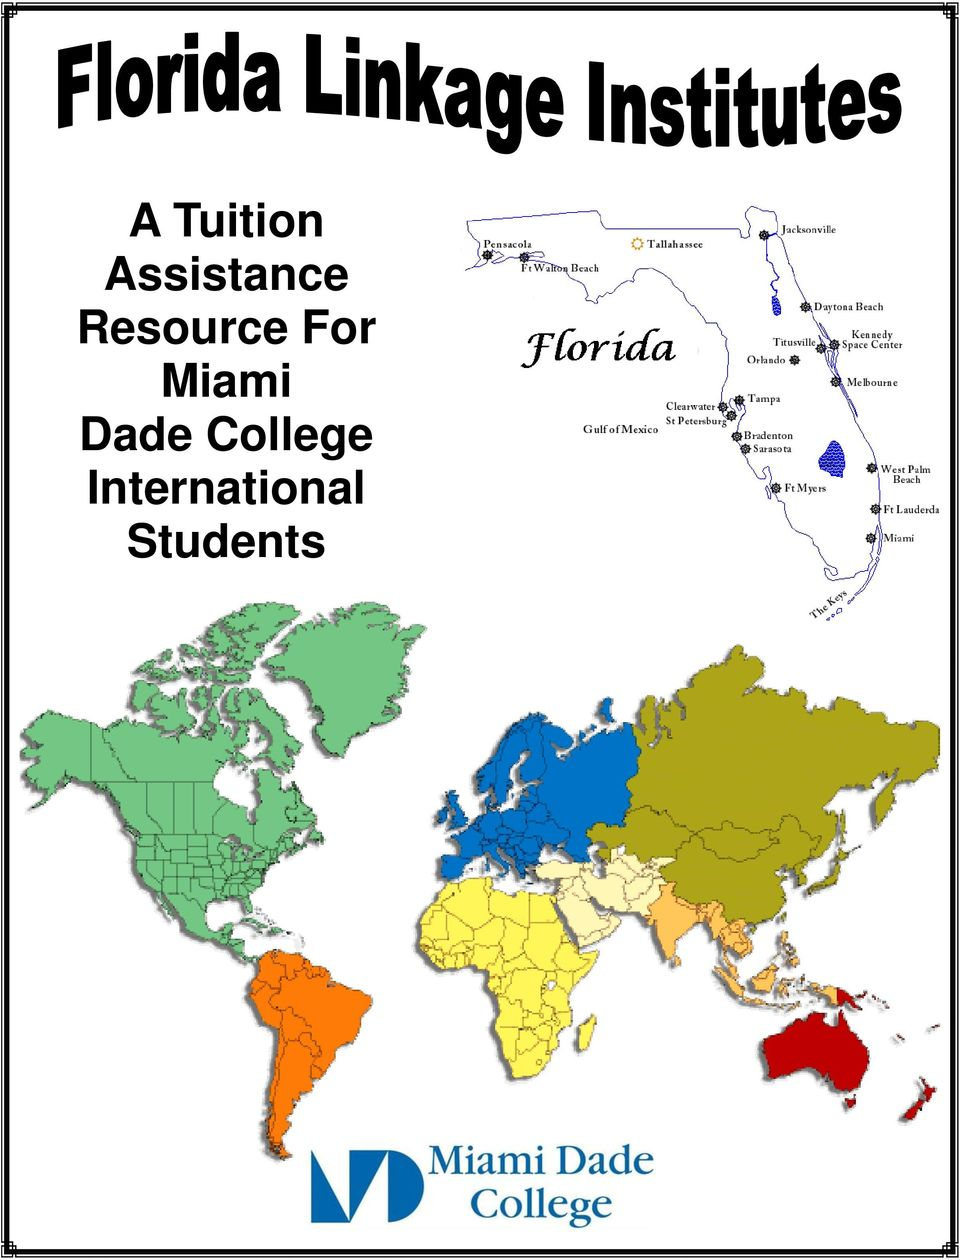 A Tuition Assistance Resource For Miami Dade College International